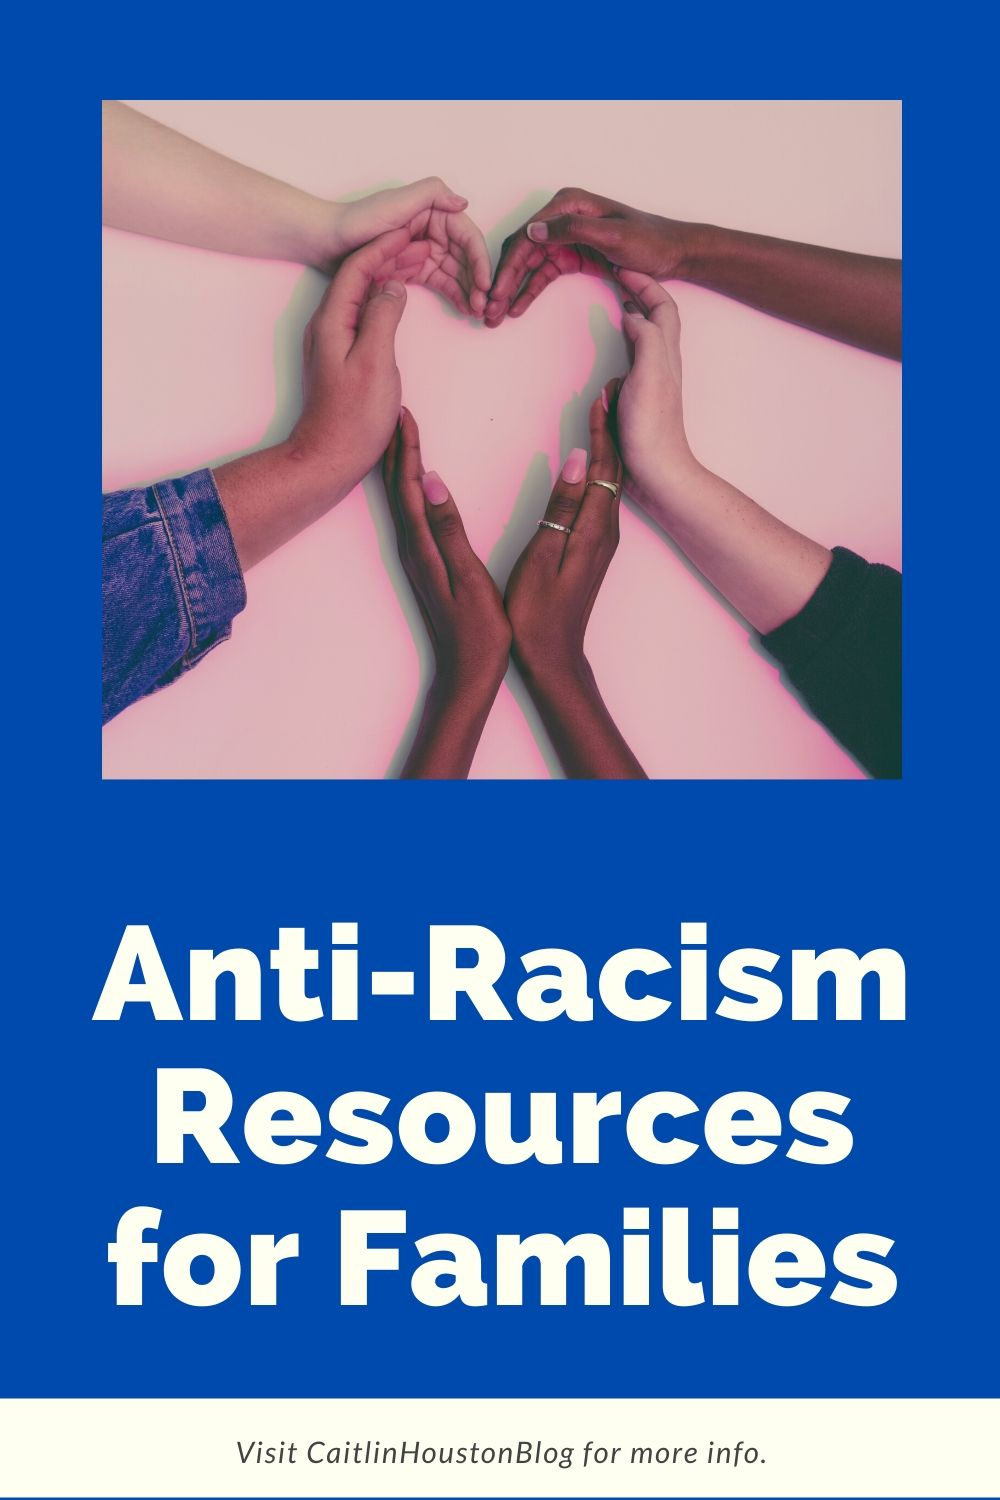 Anti-Racism Resources for Families